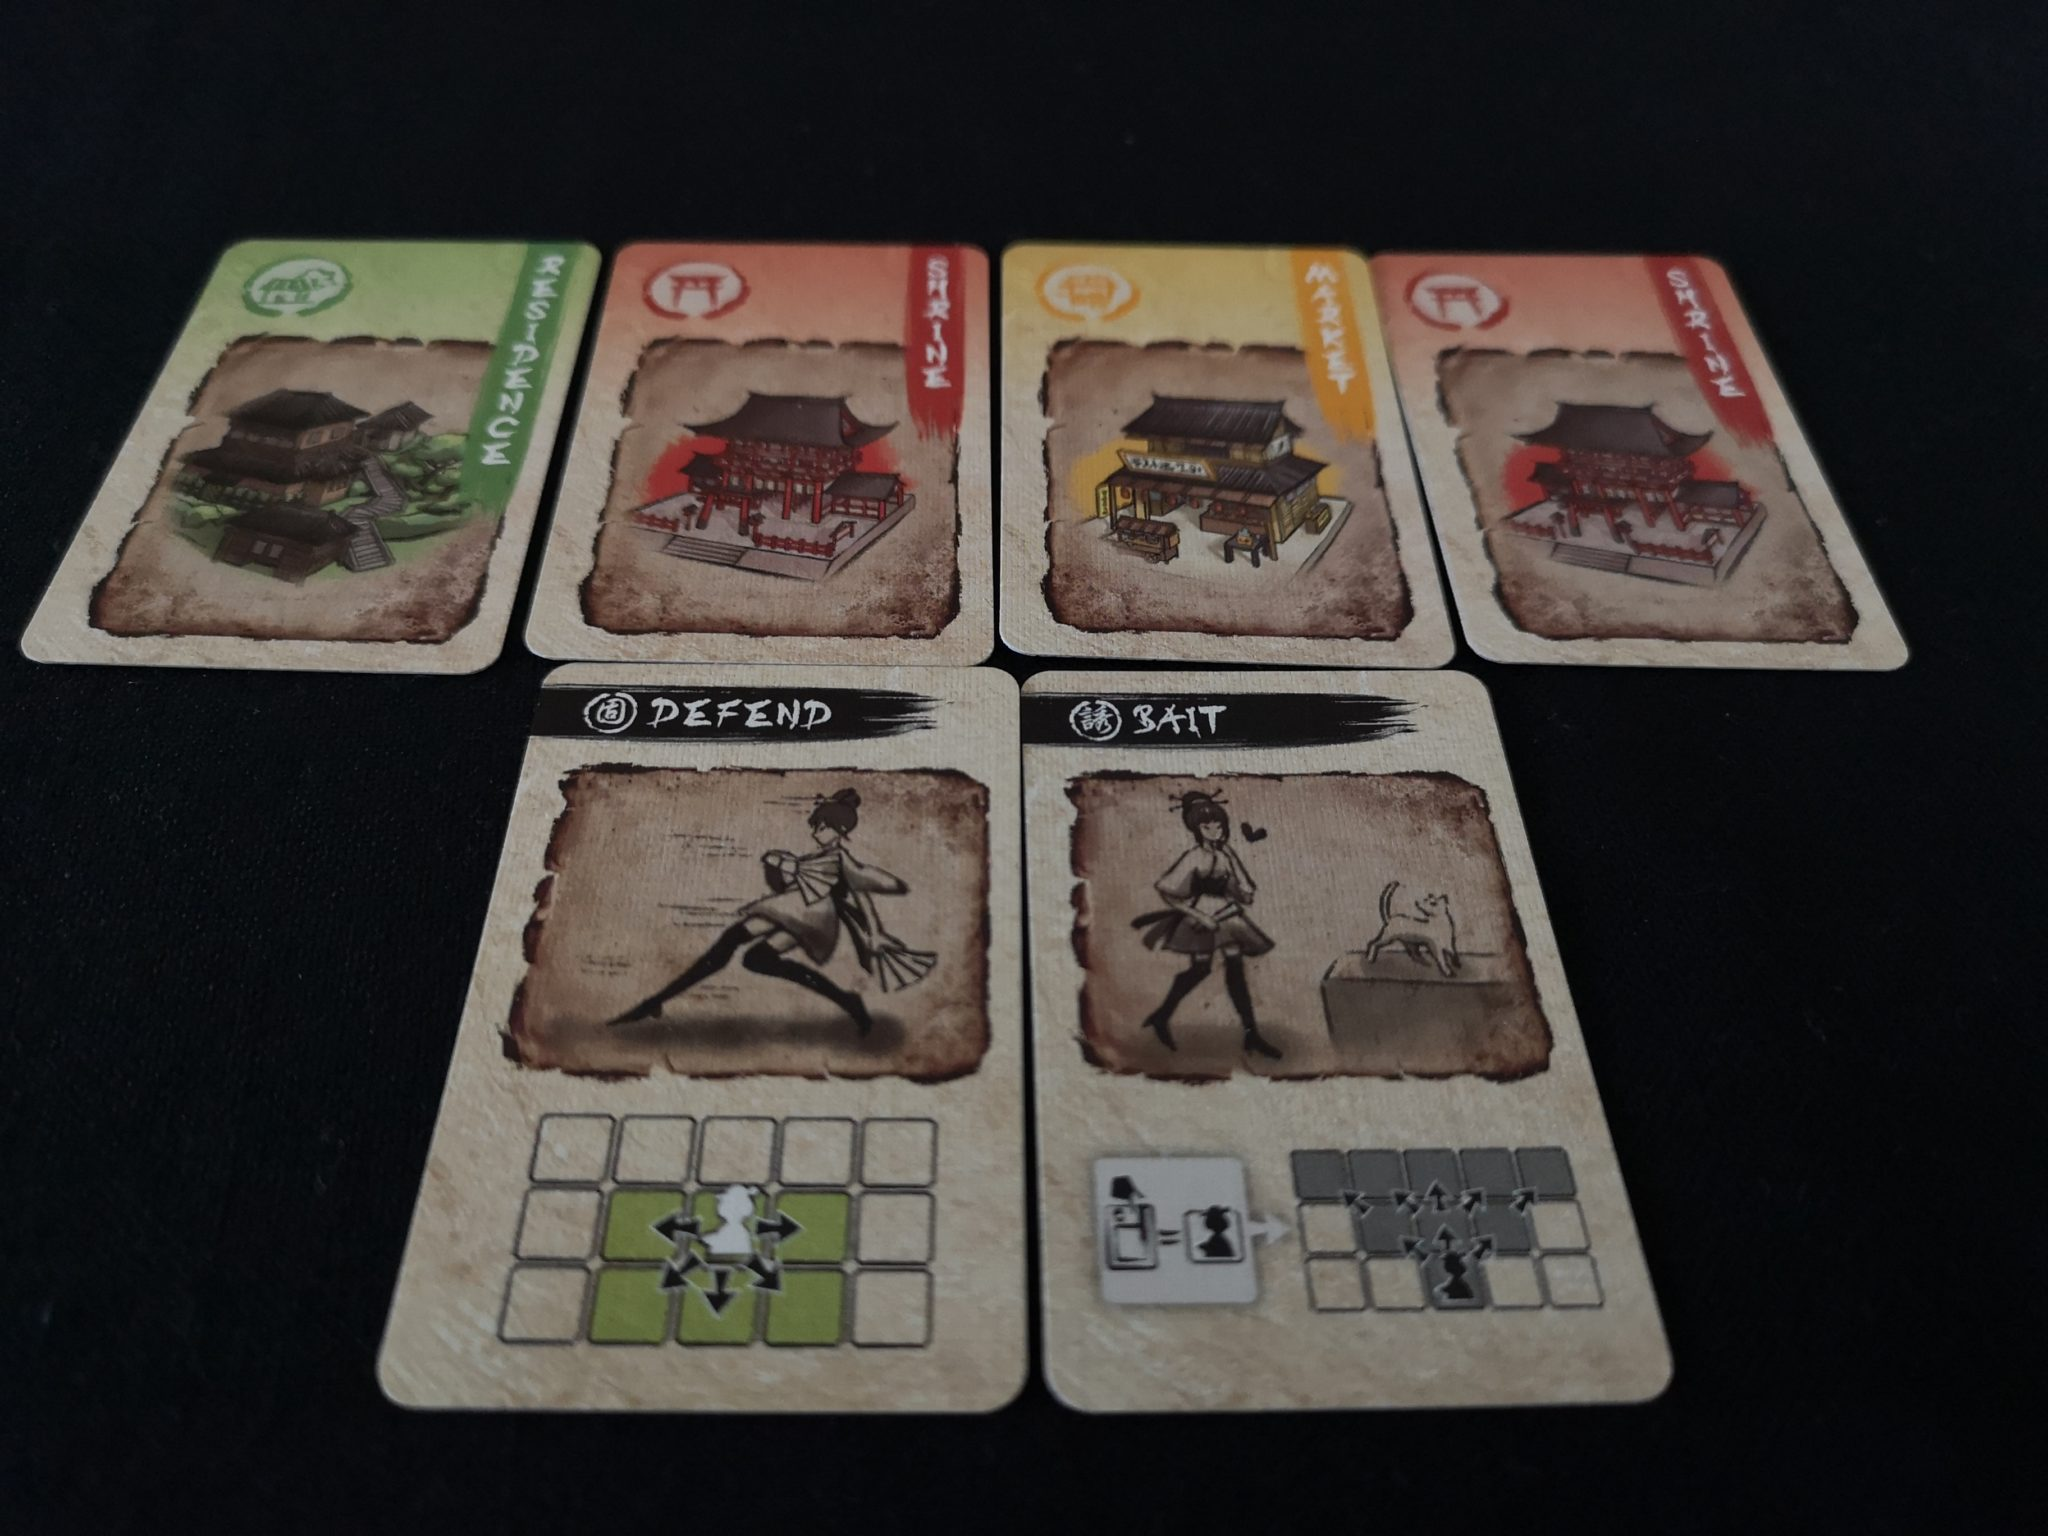 Location and Tactics cards